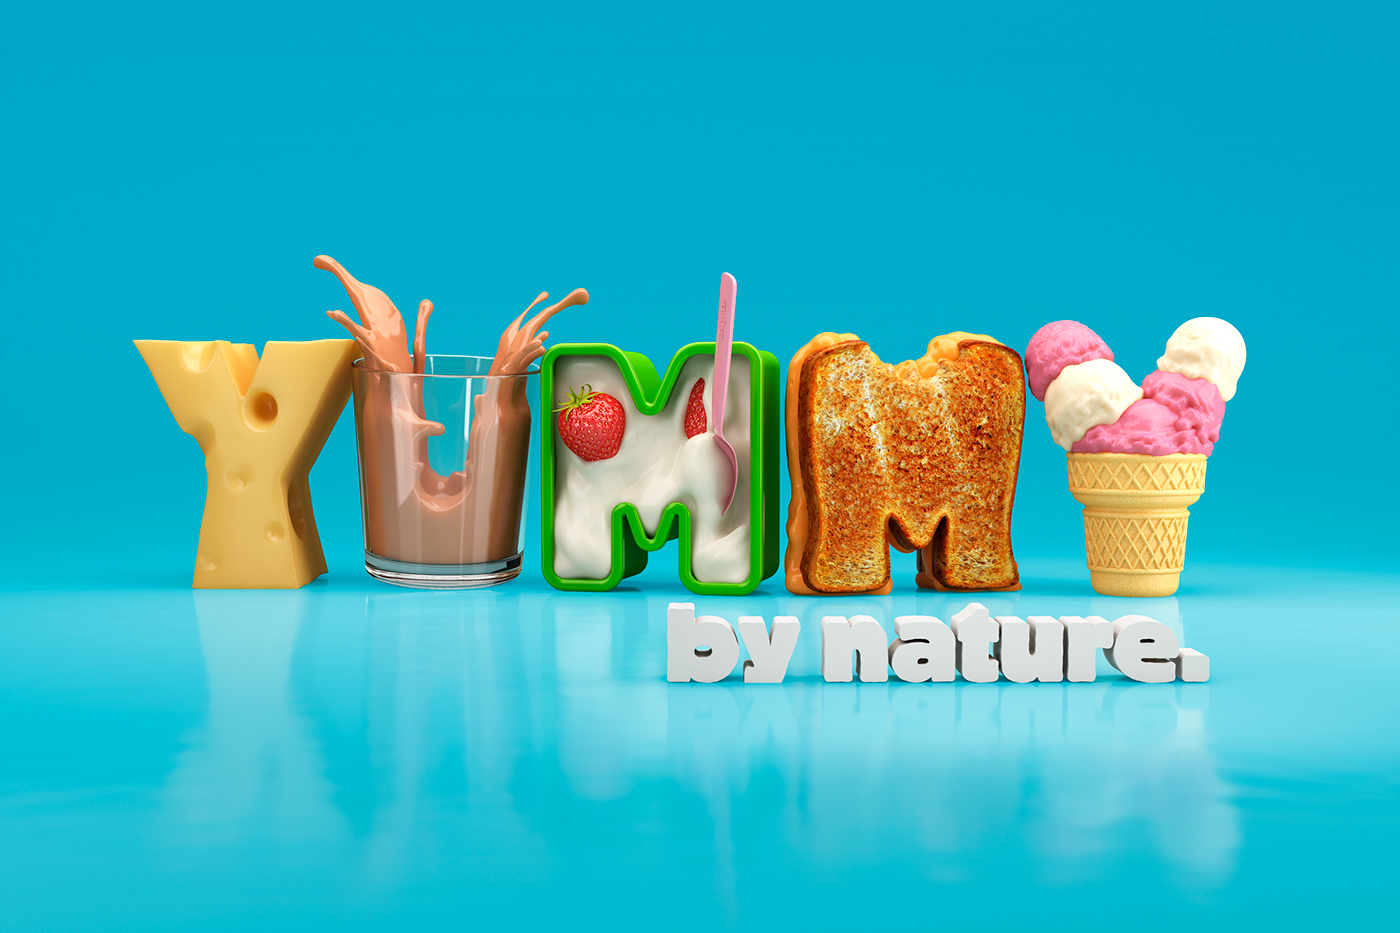 Yummy Art Direction Typography 2015 (1)